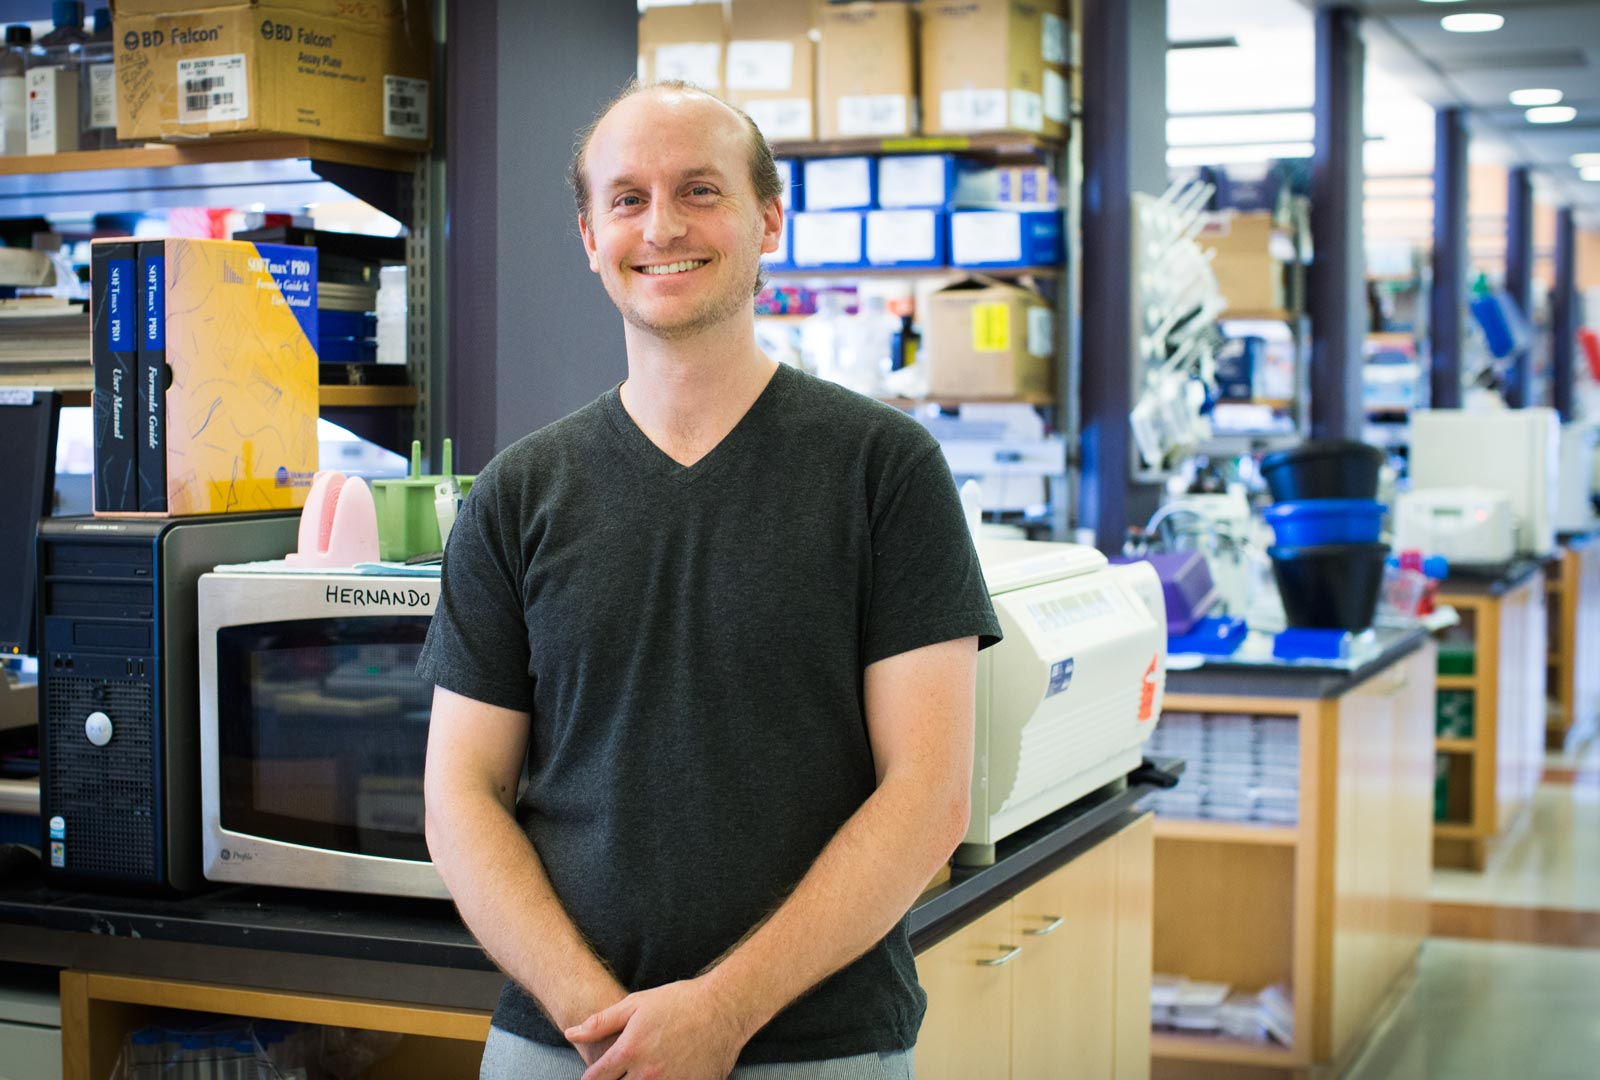 Postdoctoral fellow Douglas Hanniford, PhD